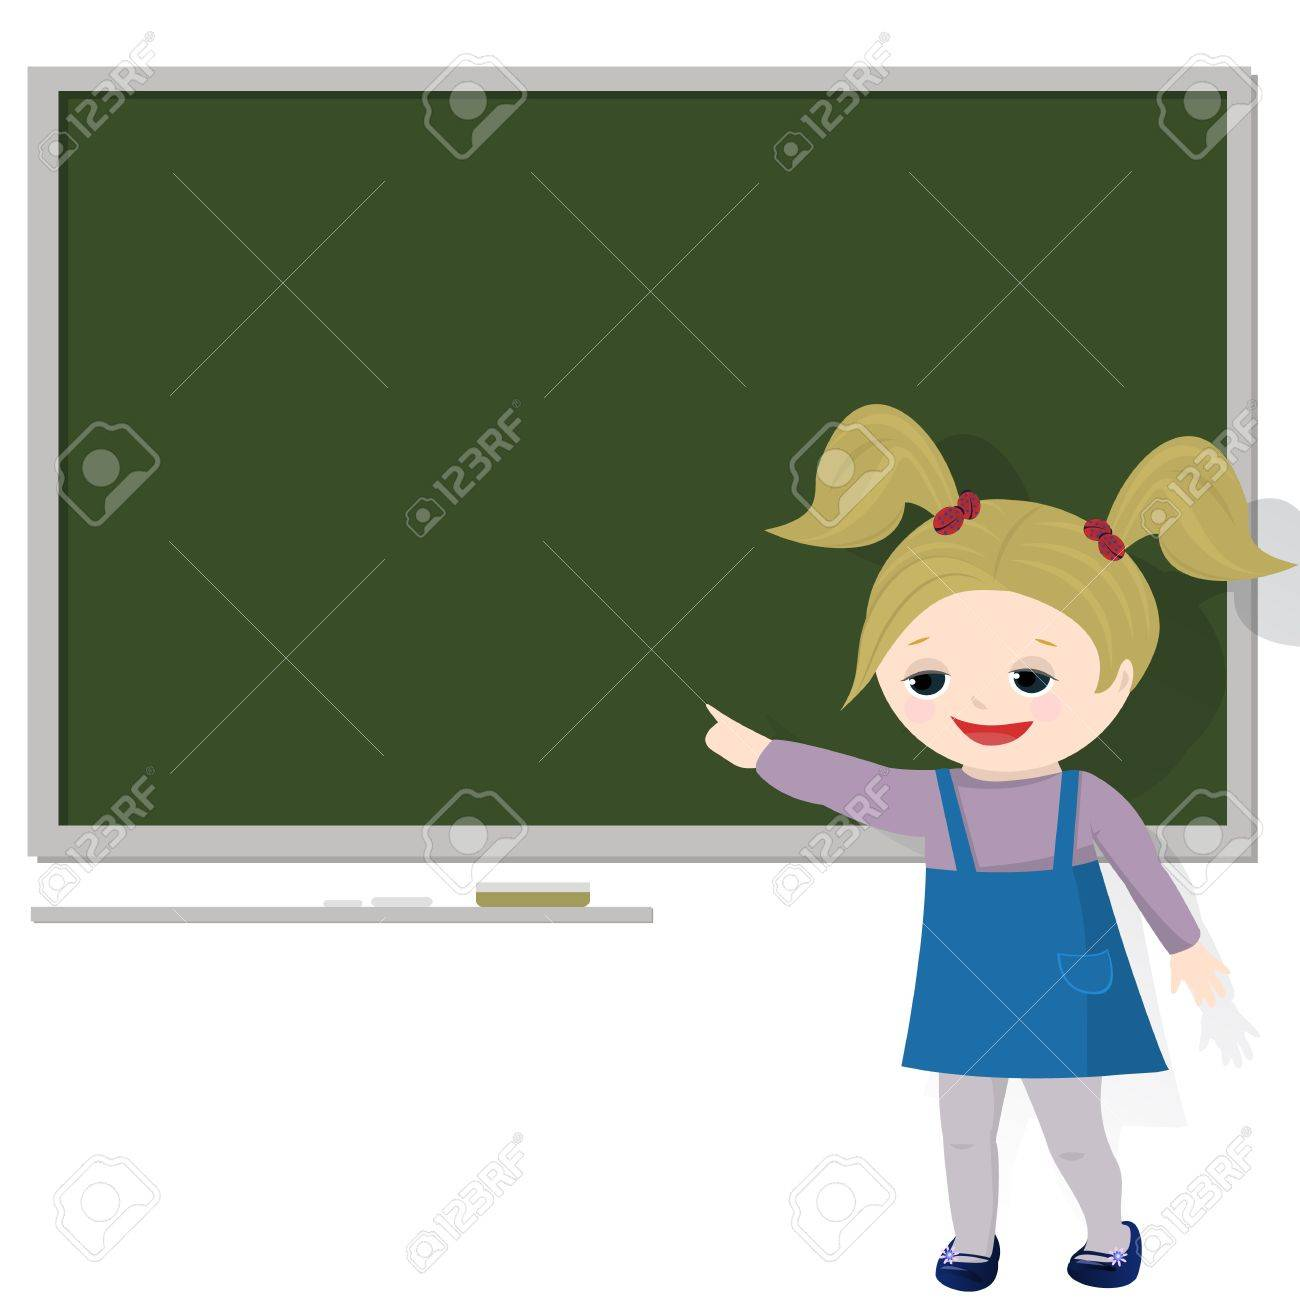 Empty cartoon classroom background - Girl In Classroom Pointing At Empty Blackboard For Text Isolated On White Background Stock Vector